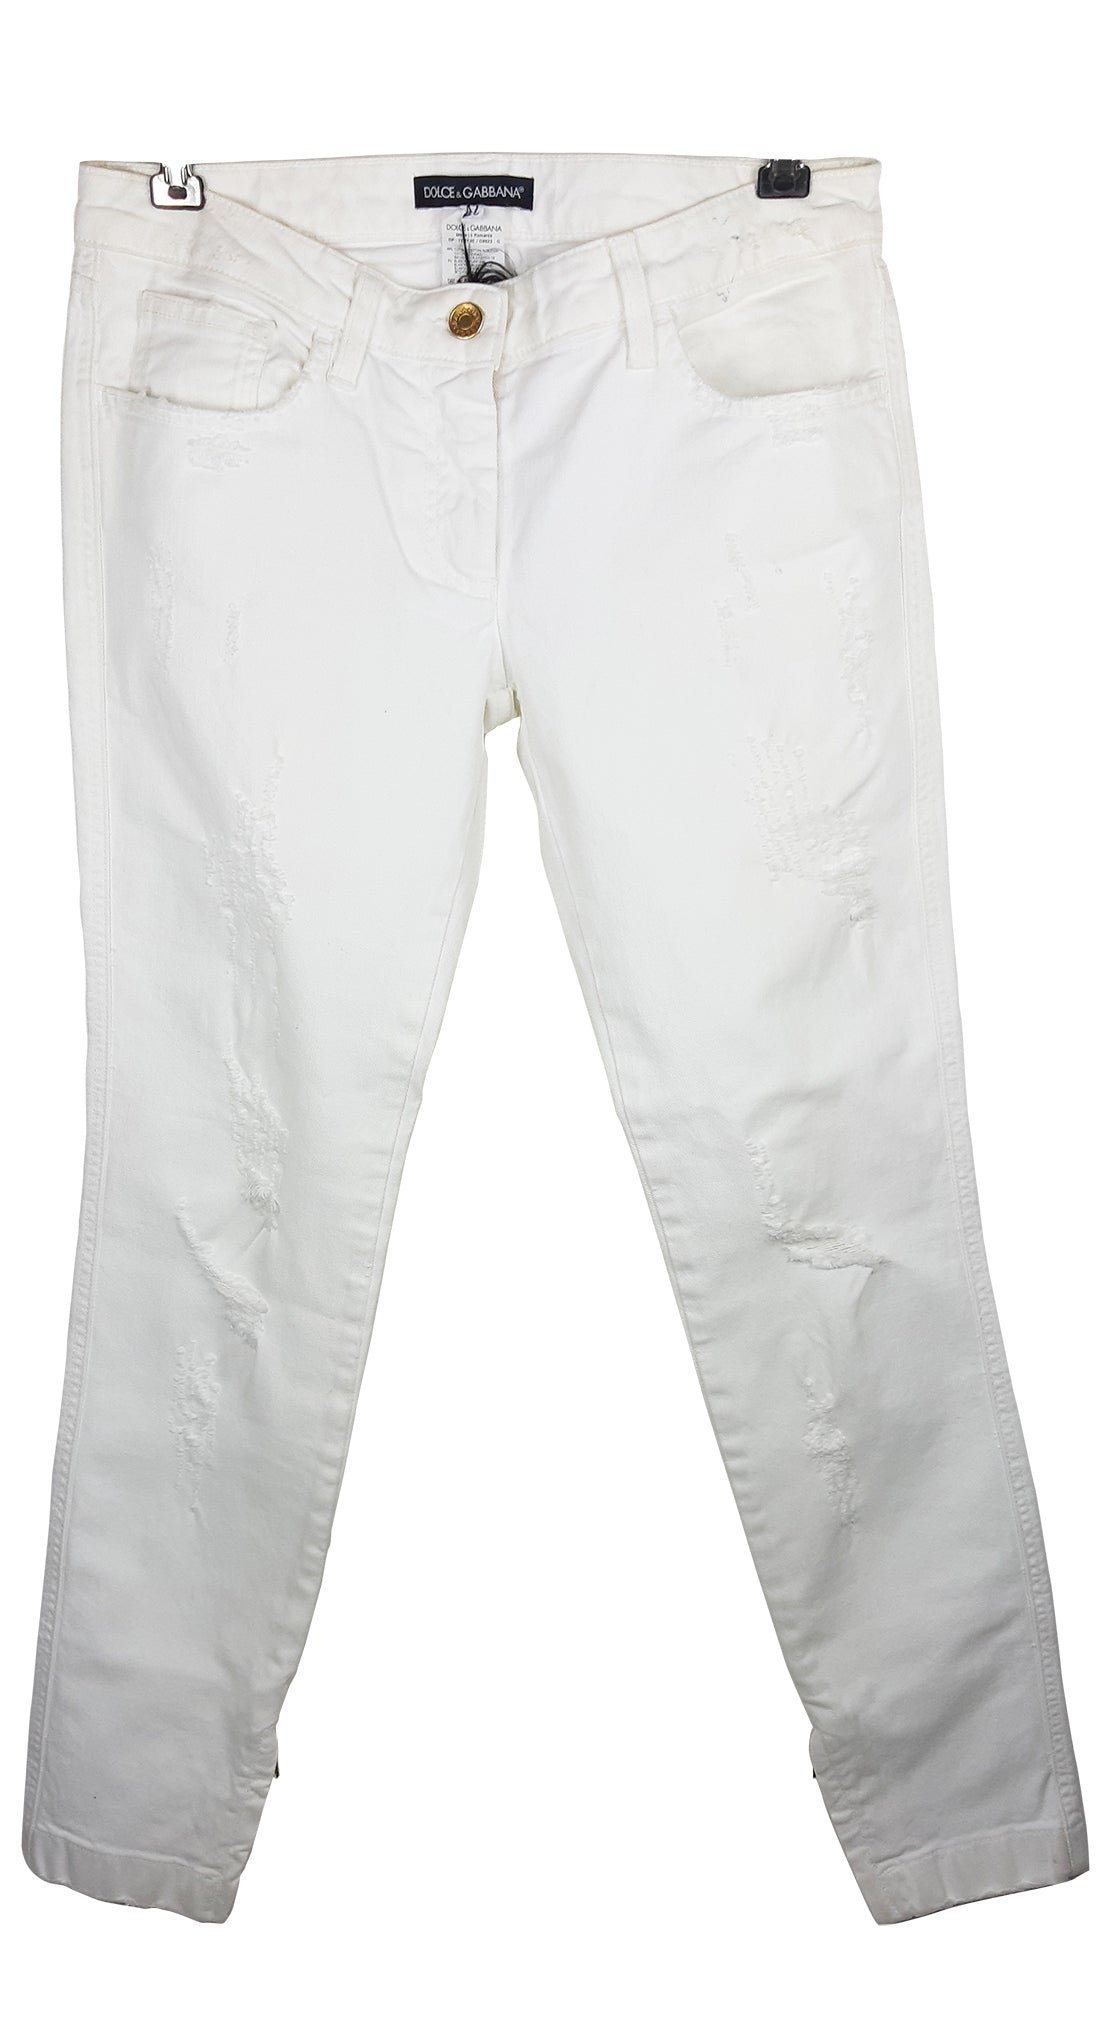 Dolce & Gabbana Ripped Jeans in White with Side Golden Zips Size 42 (IT) L (INT)